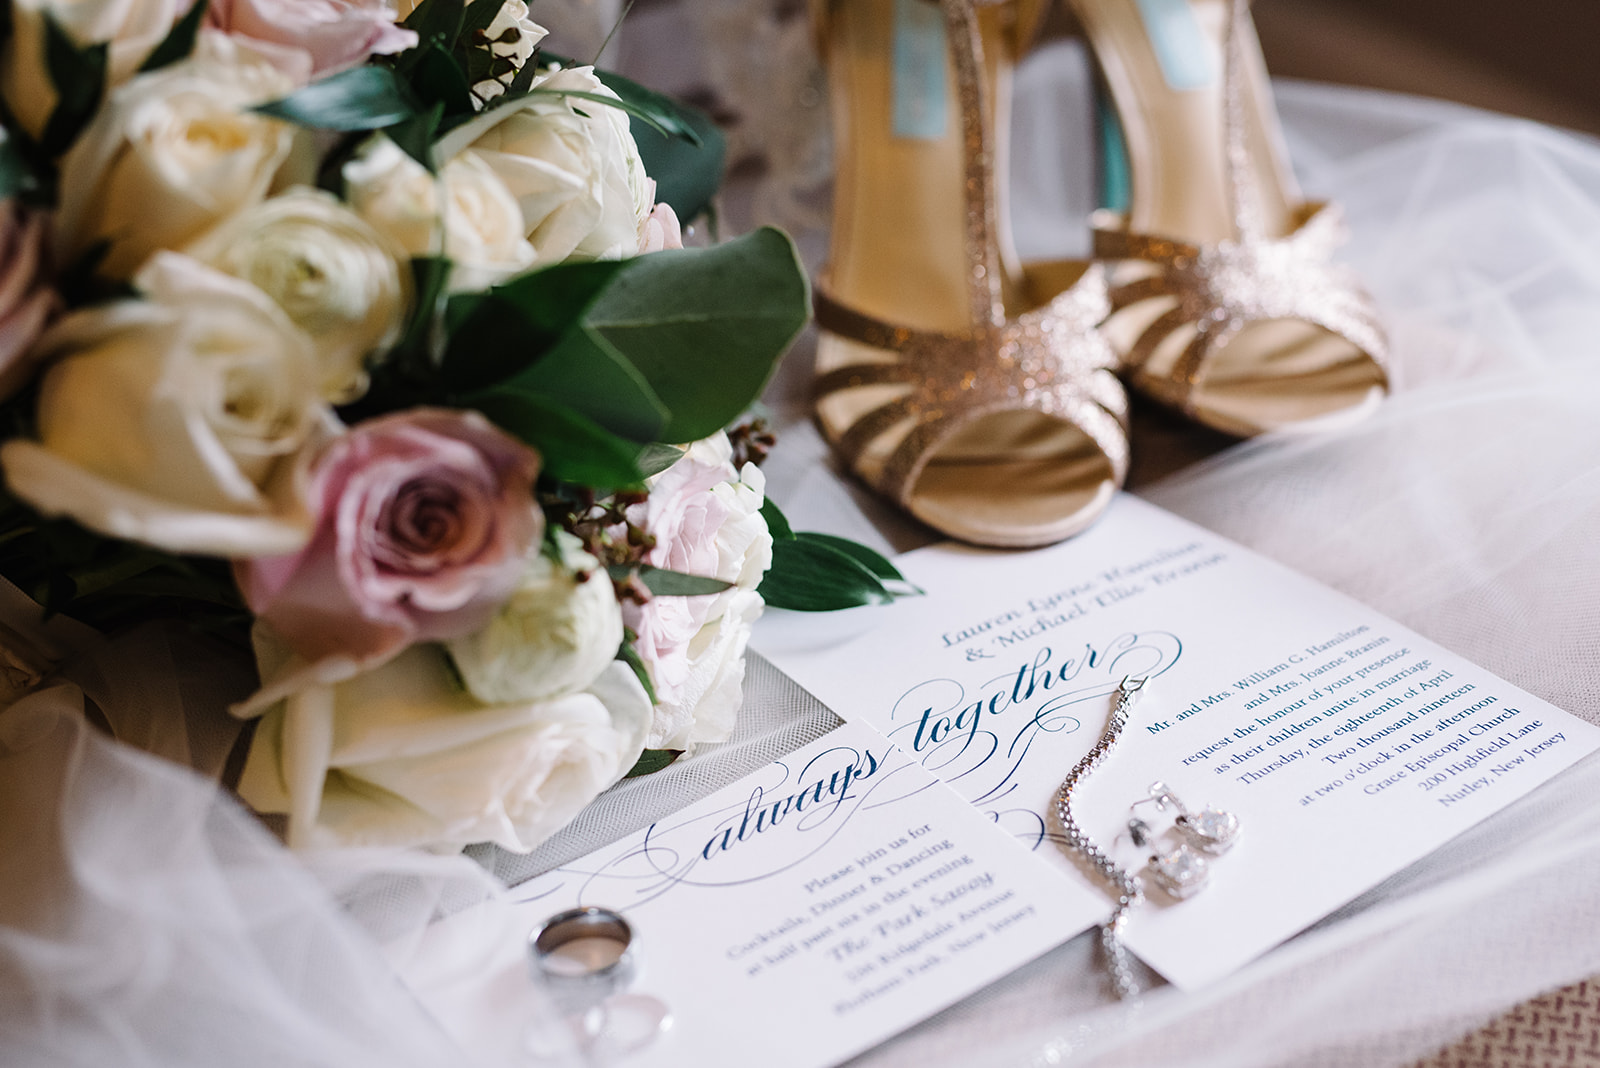 The_Park_Savoy_Wedding-_Lauren_and_Mike-Highlights-New_Jersey-_Olivia_Christina_Photo-4 - Copy.jpg